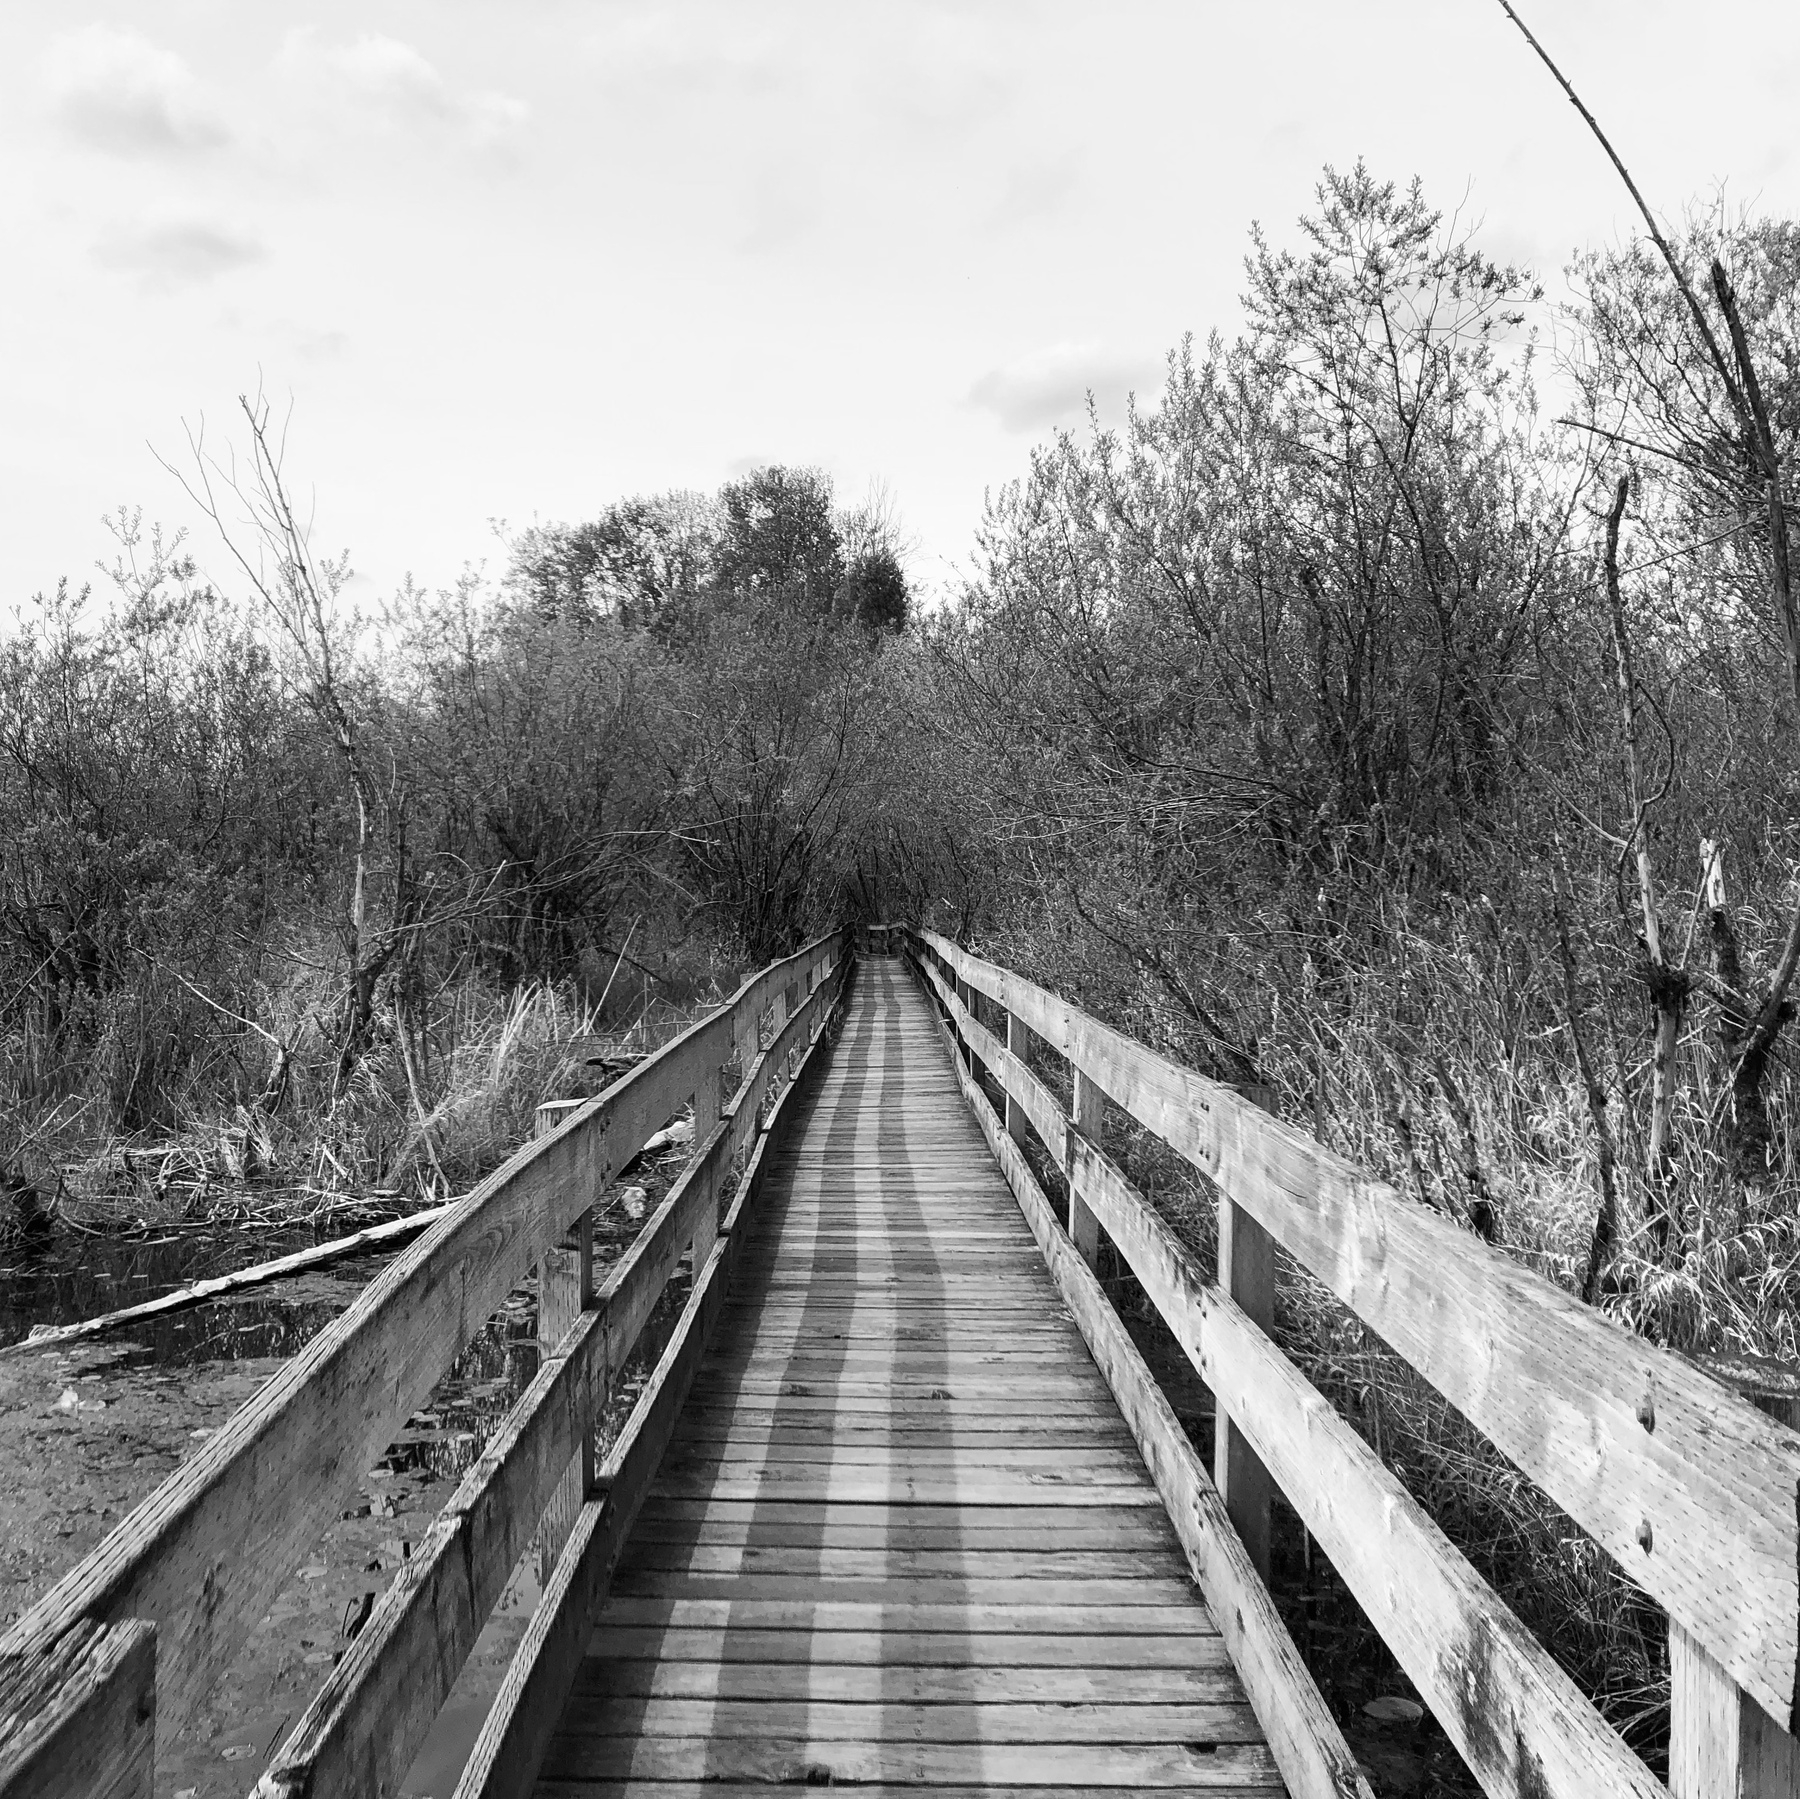 A narrow wooden boardwalk disappears into a brushy marshland